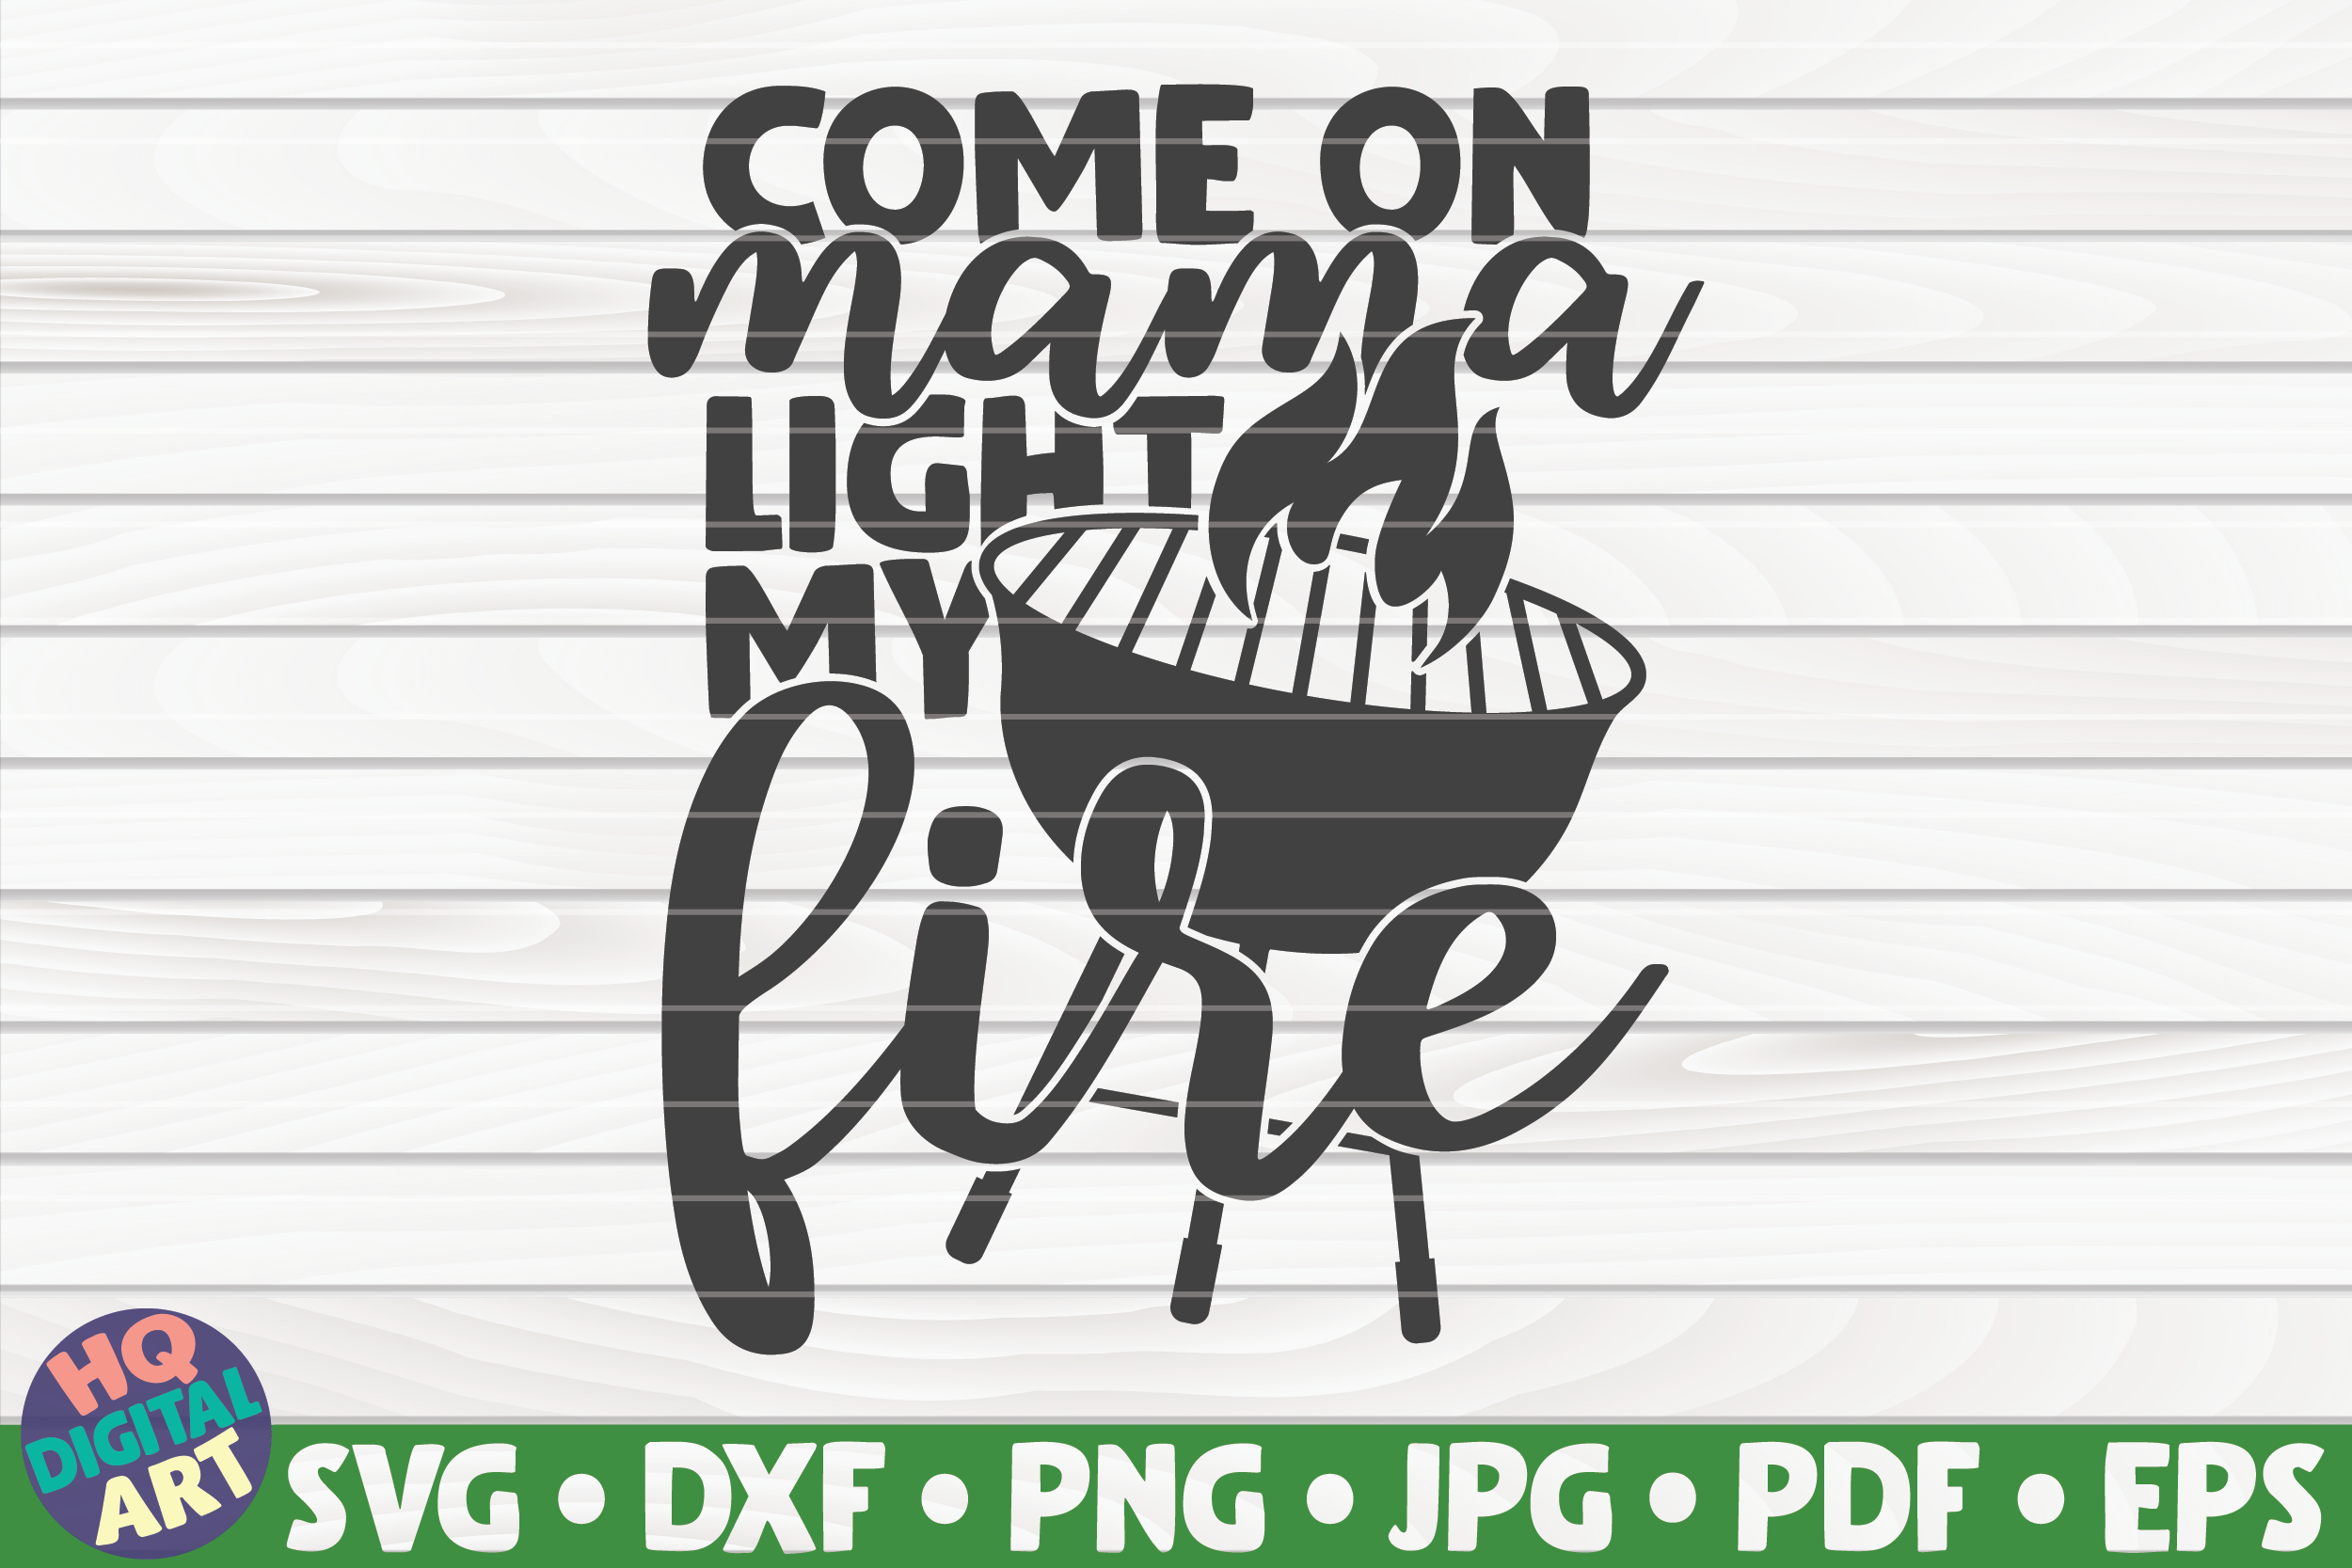 Download Free Come On Mama Light My Fire Graphic By Mihaibadea95 Creative for Cricut Explore, Silhouette and other cutting machines.